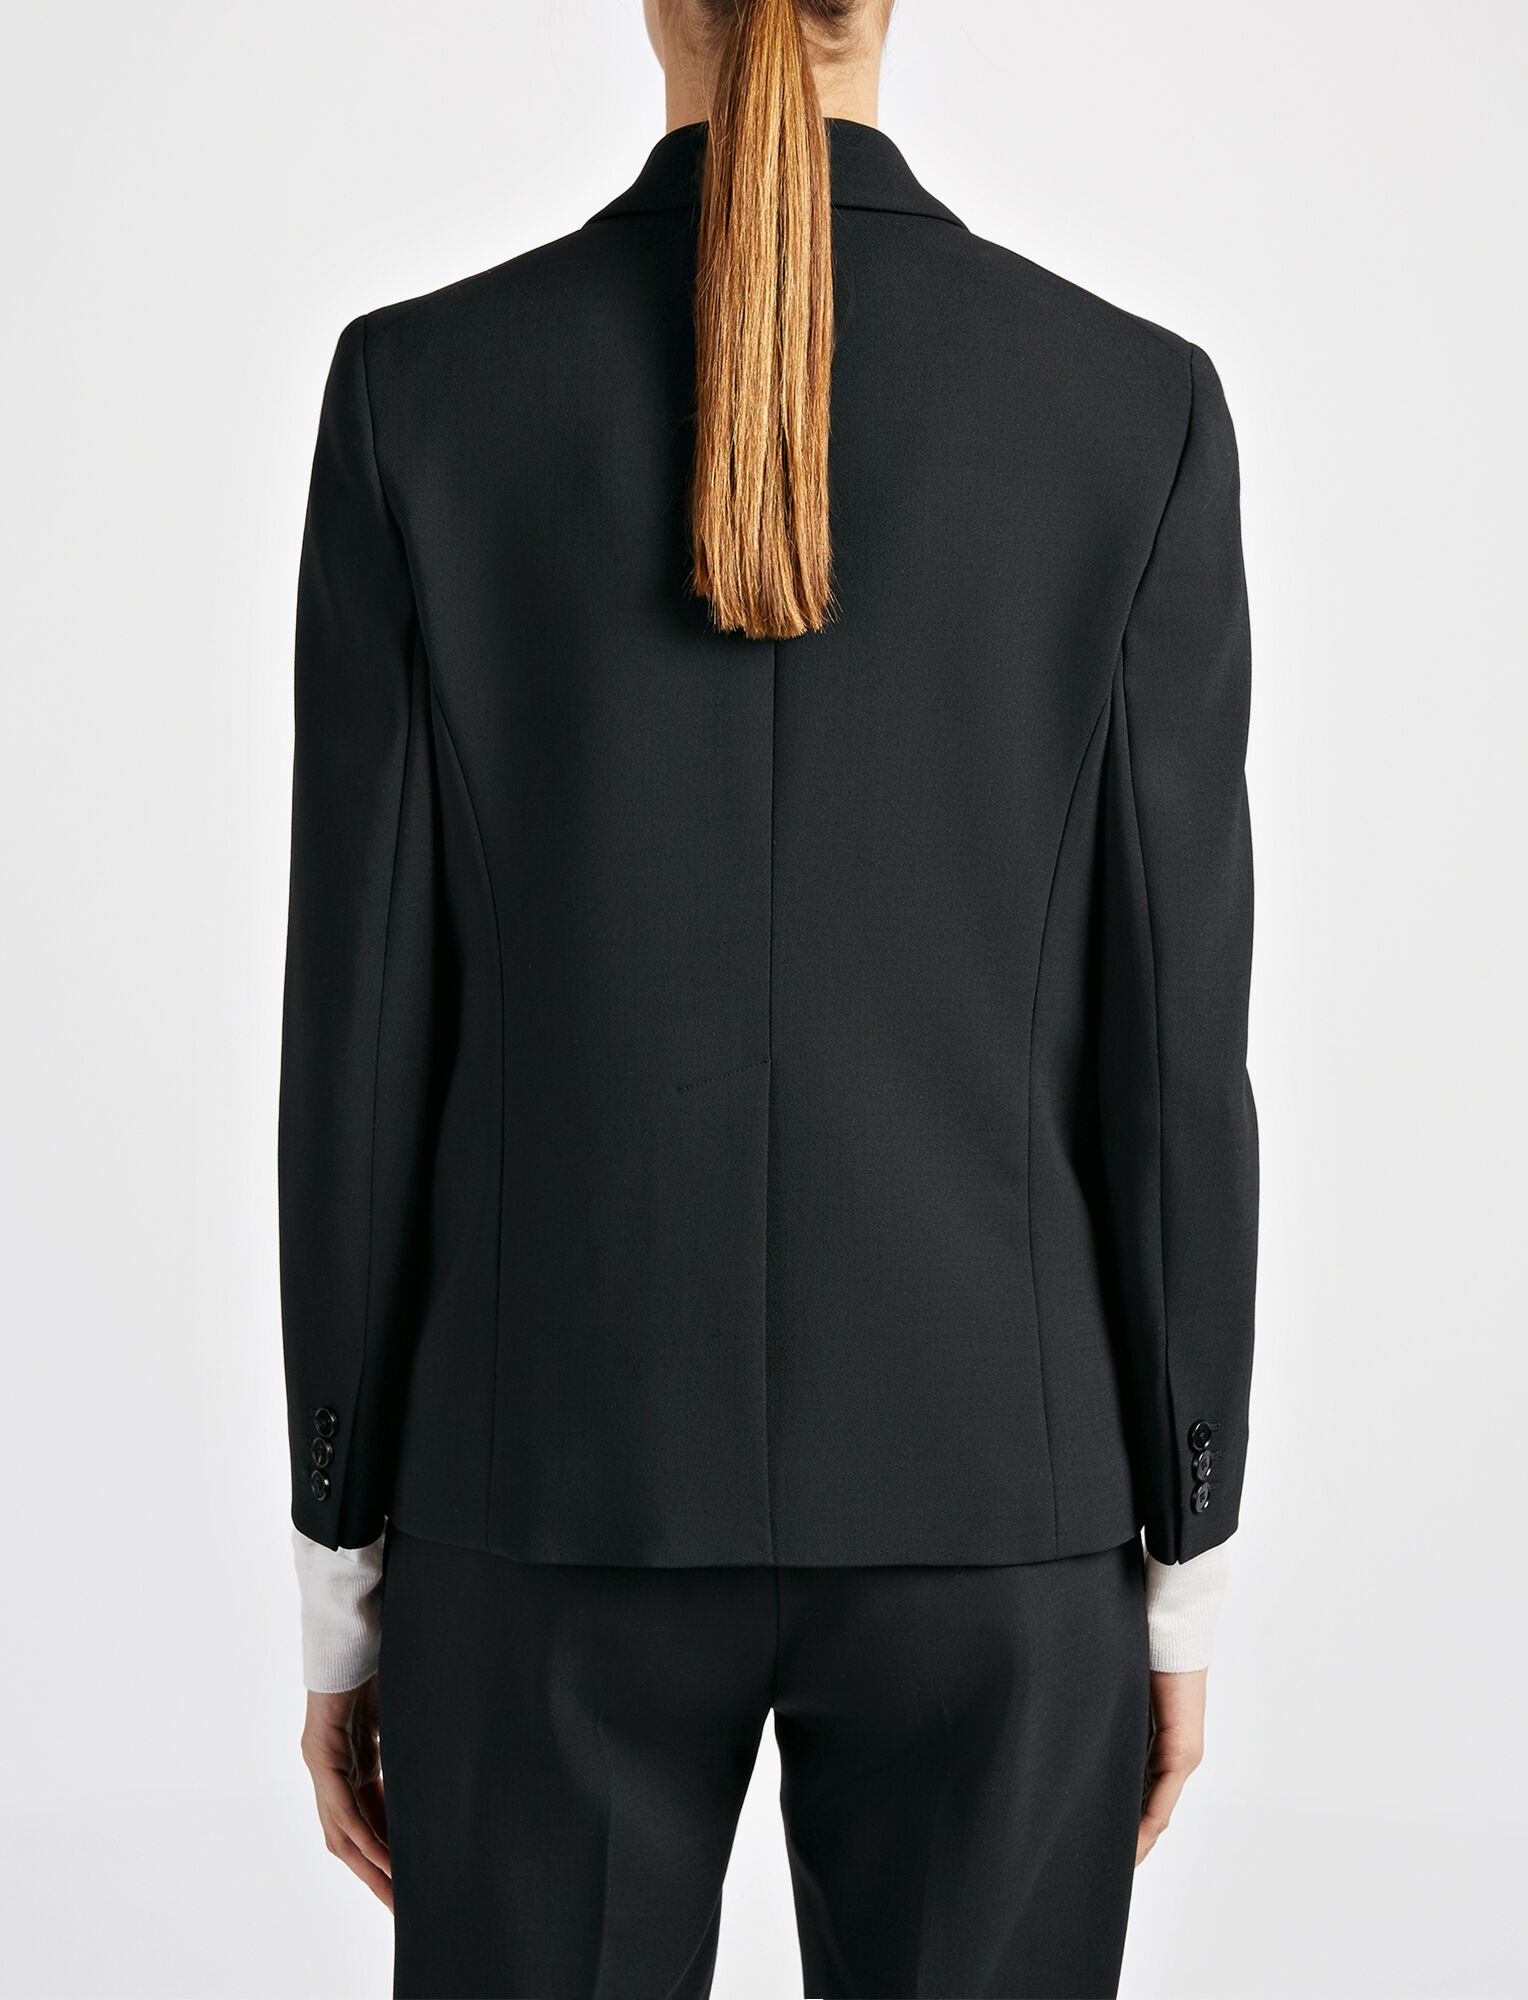 Joseph, Veste Savoy en laine stretch, in BLACK